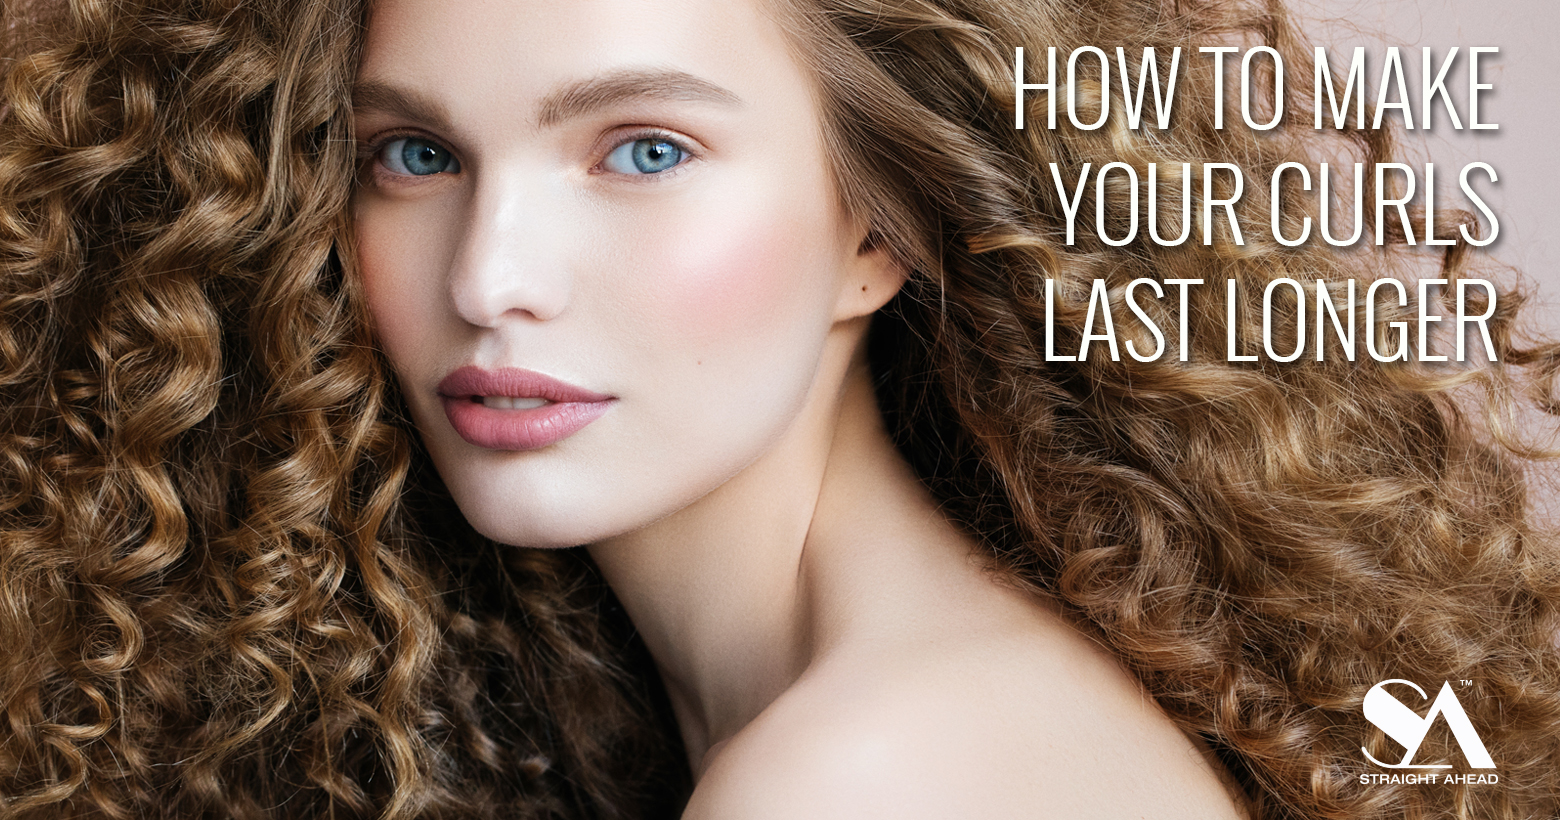 How To Make Your Curls Last Longer - Straight Ahead Beauty